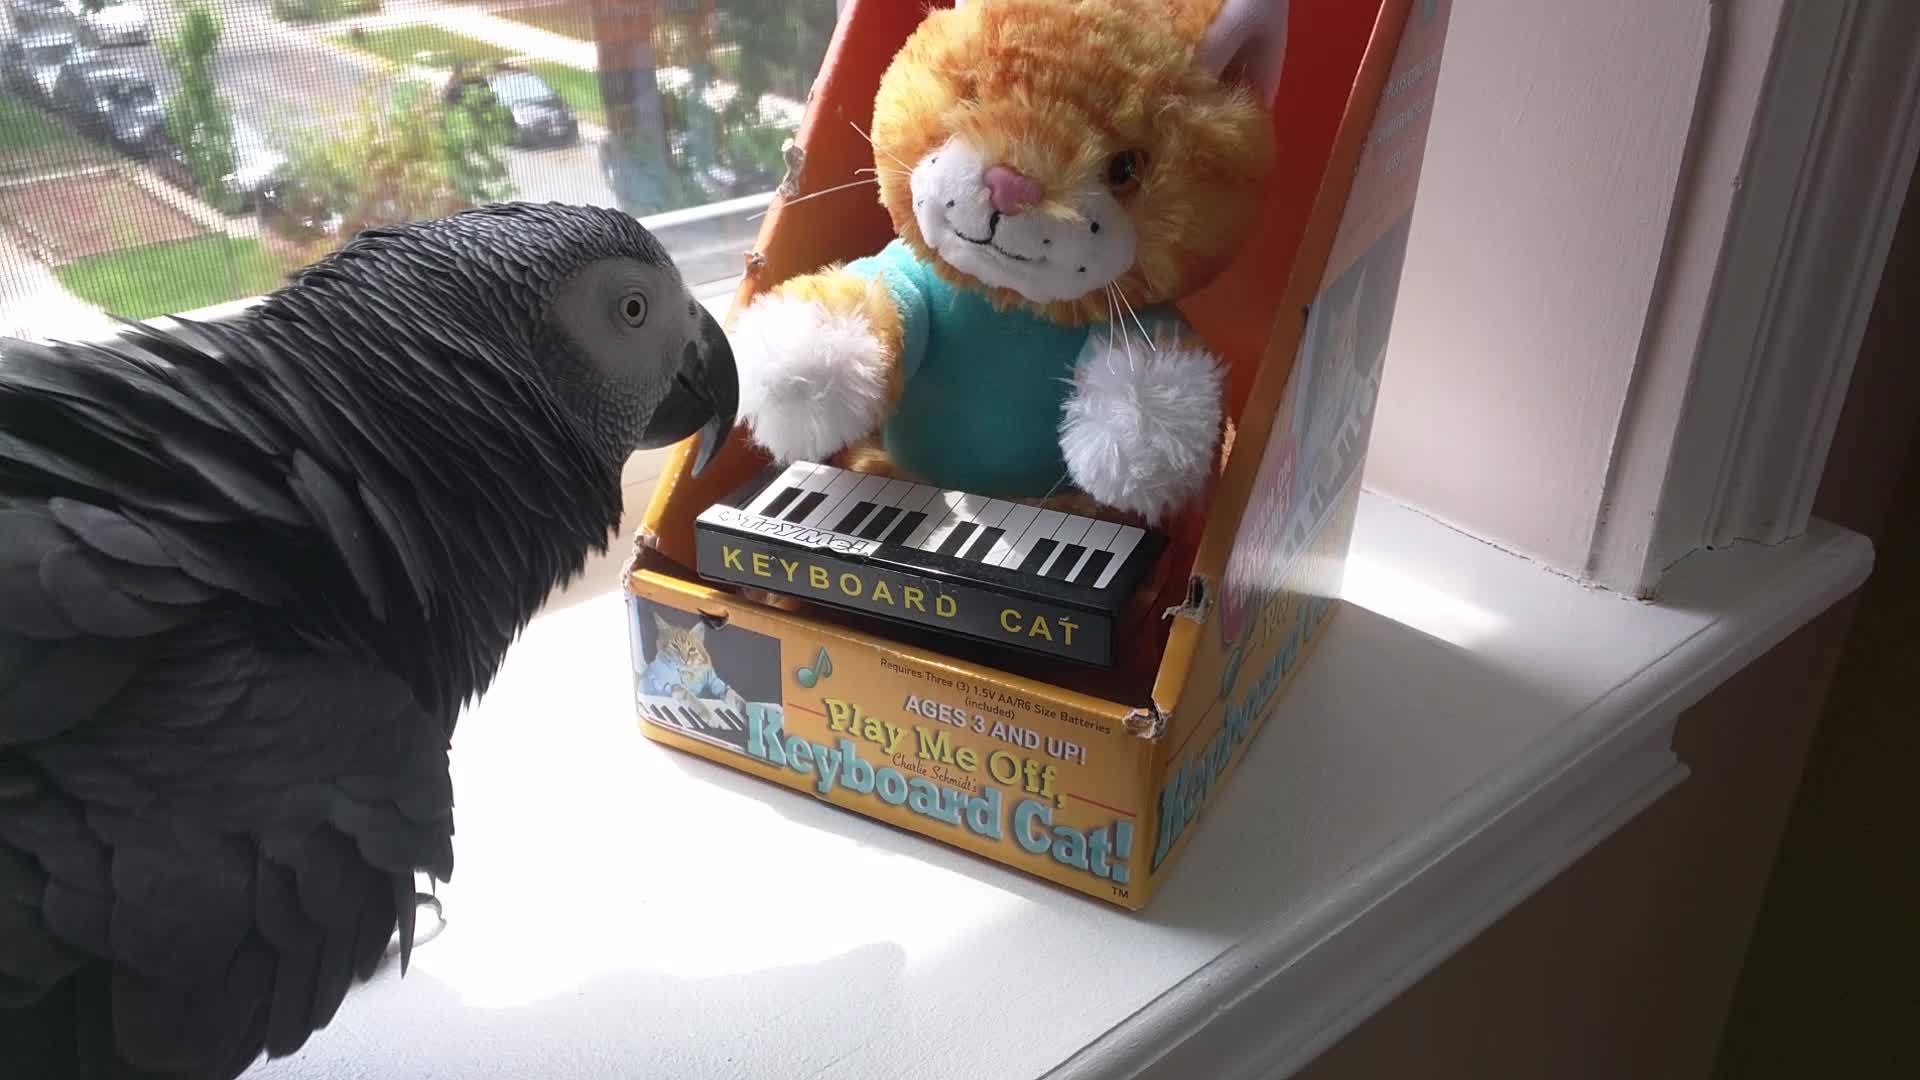 #keyboardcat, partyparrot, Keyboard Cat Party GIFs